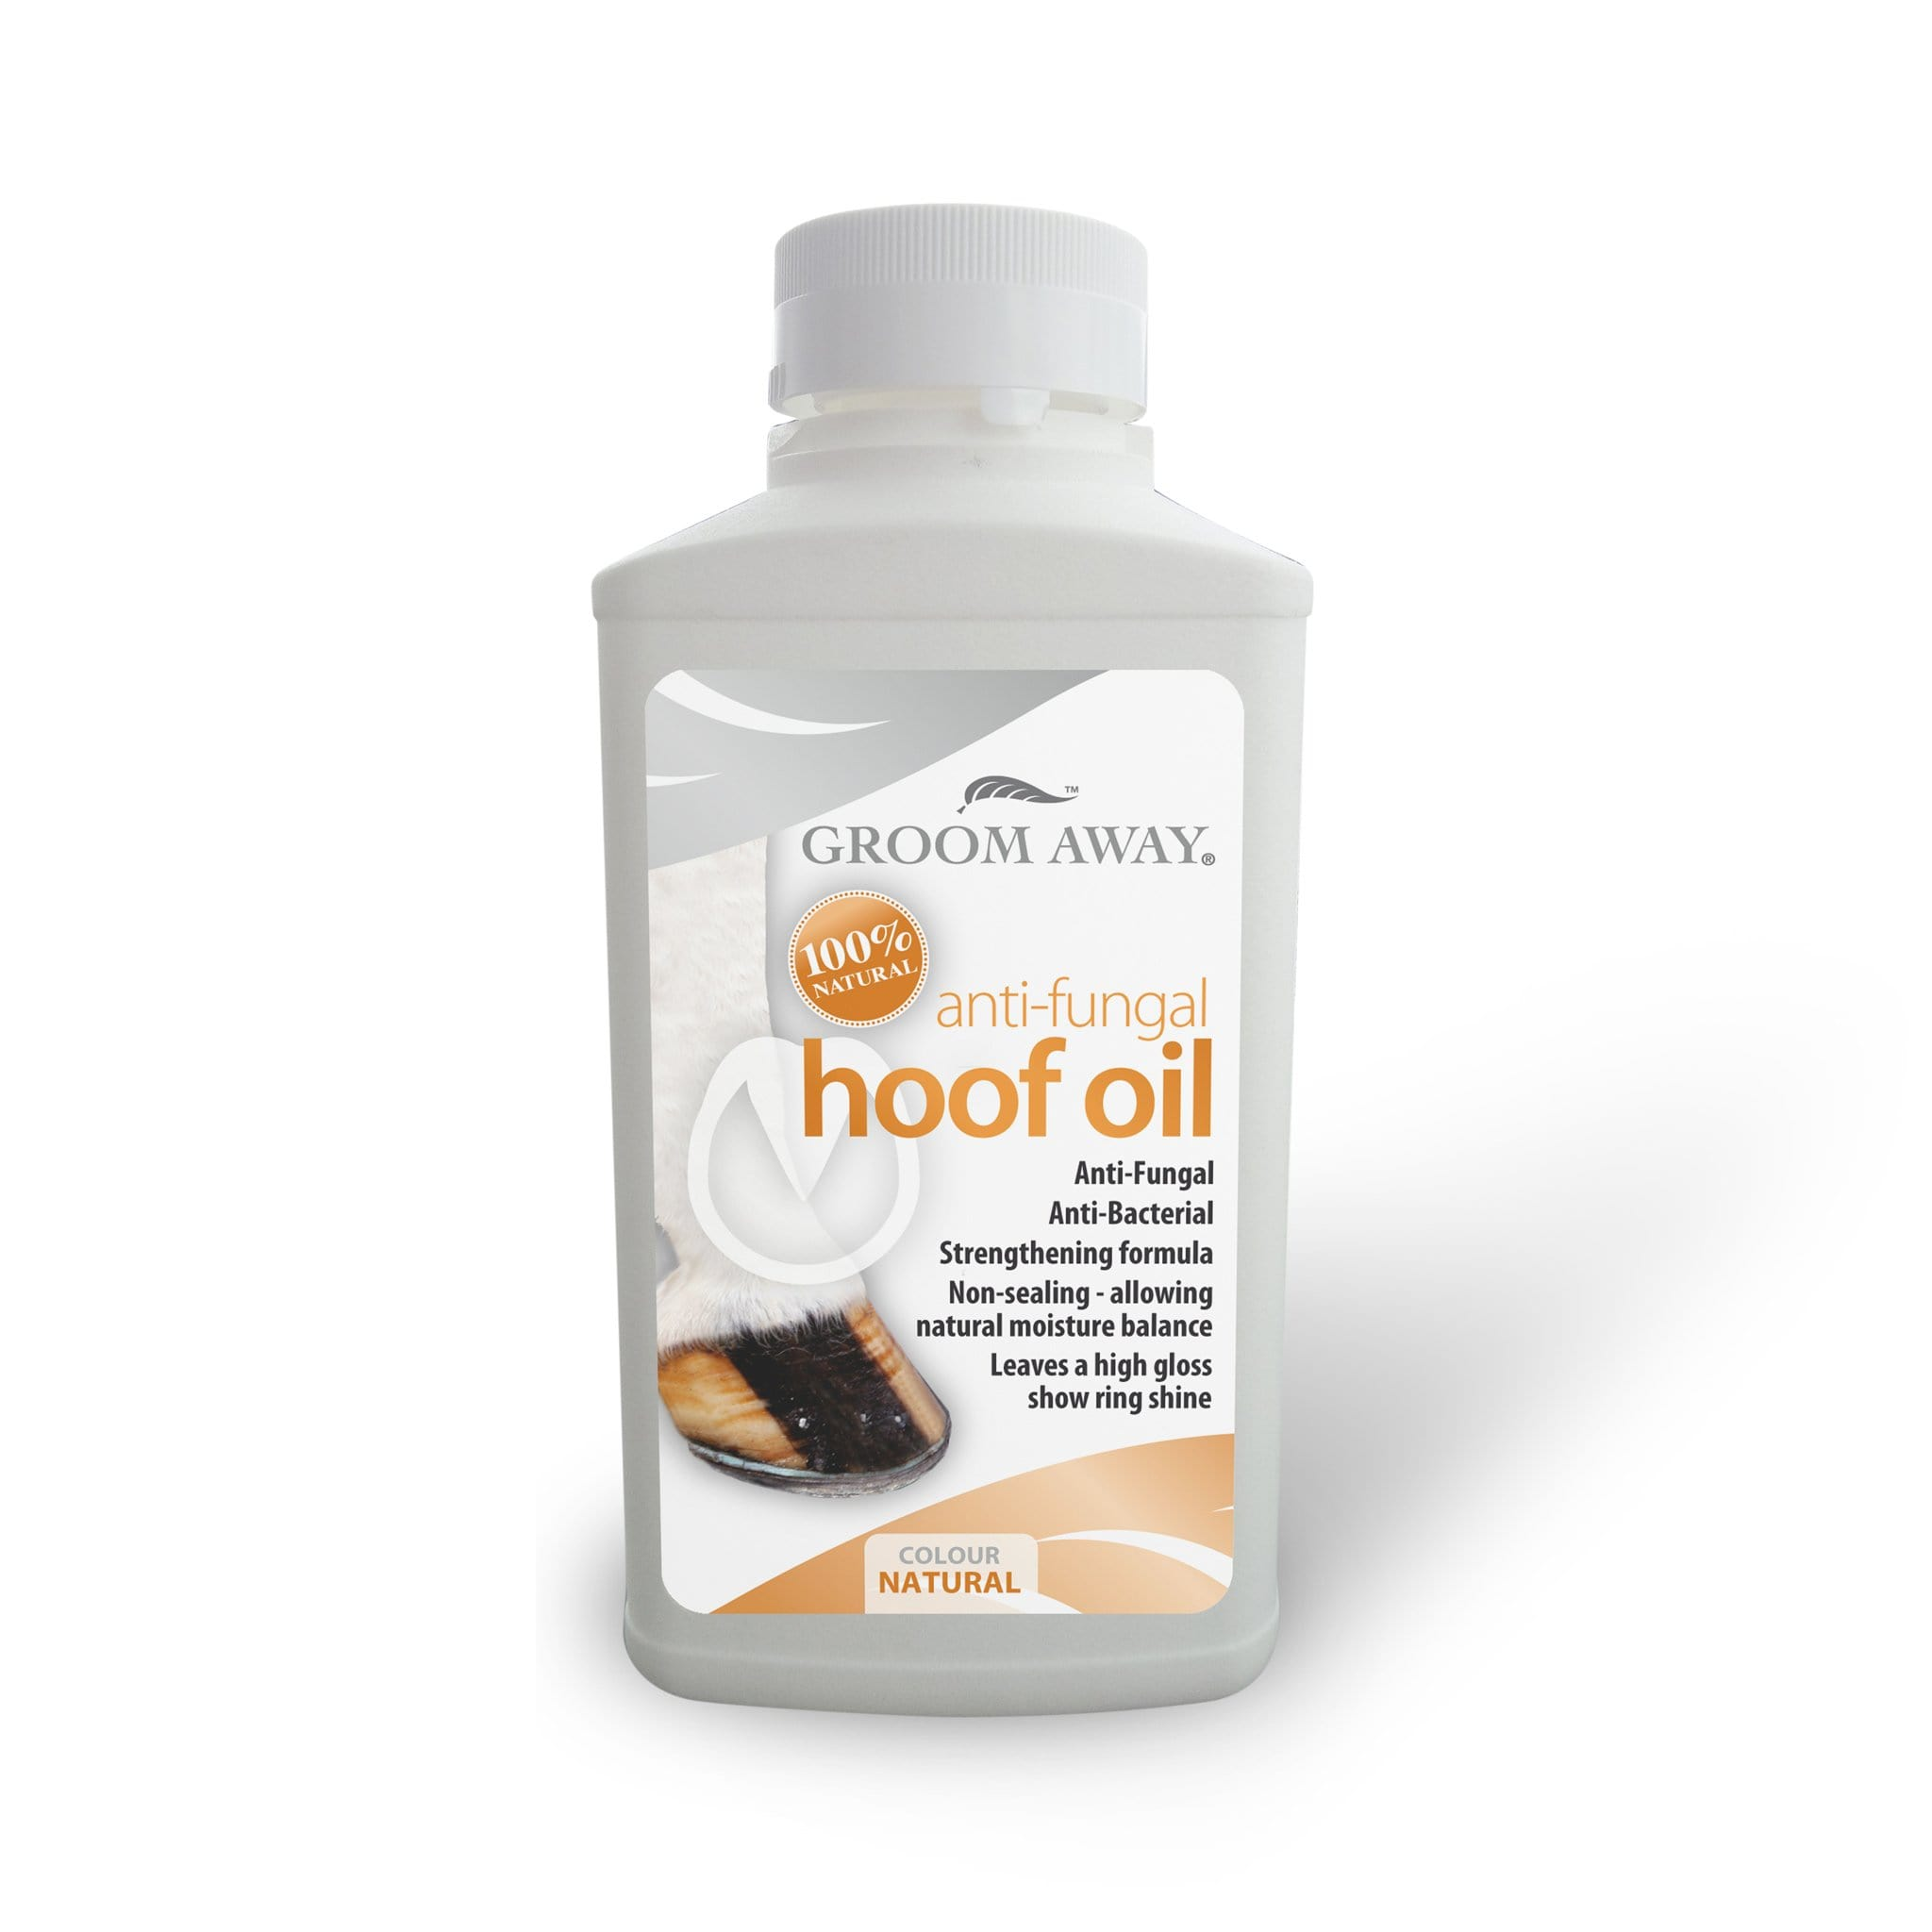 Groom Away Anti-Fungal Hoof Oil Natural FAY0170